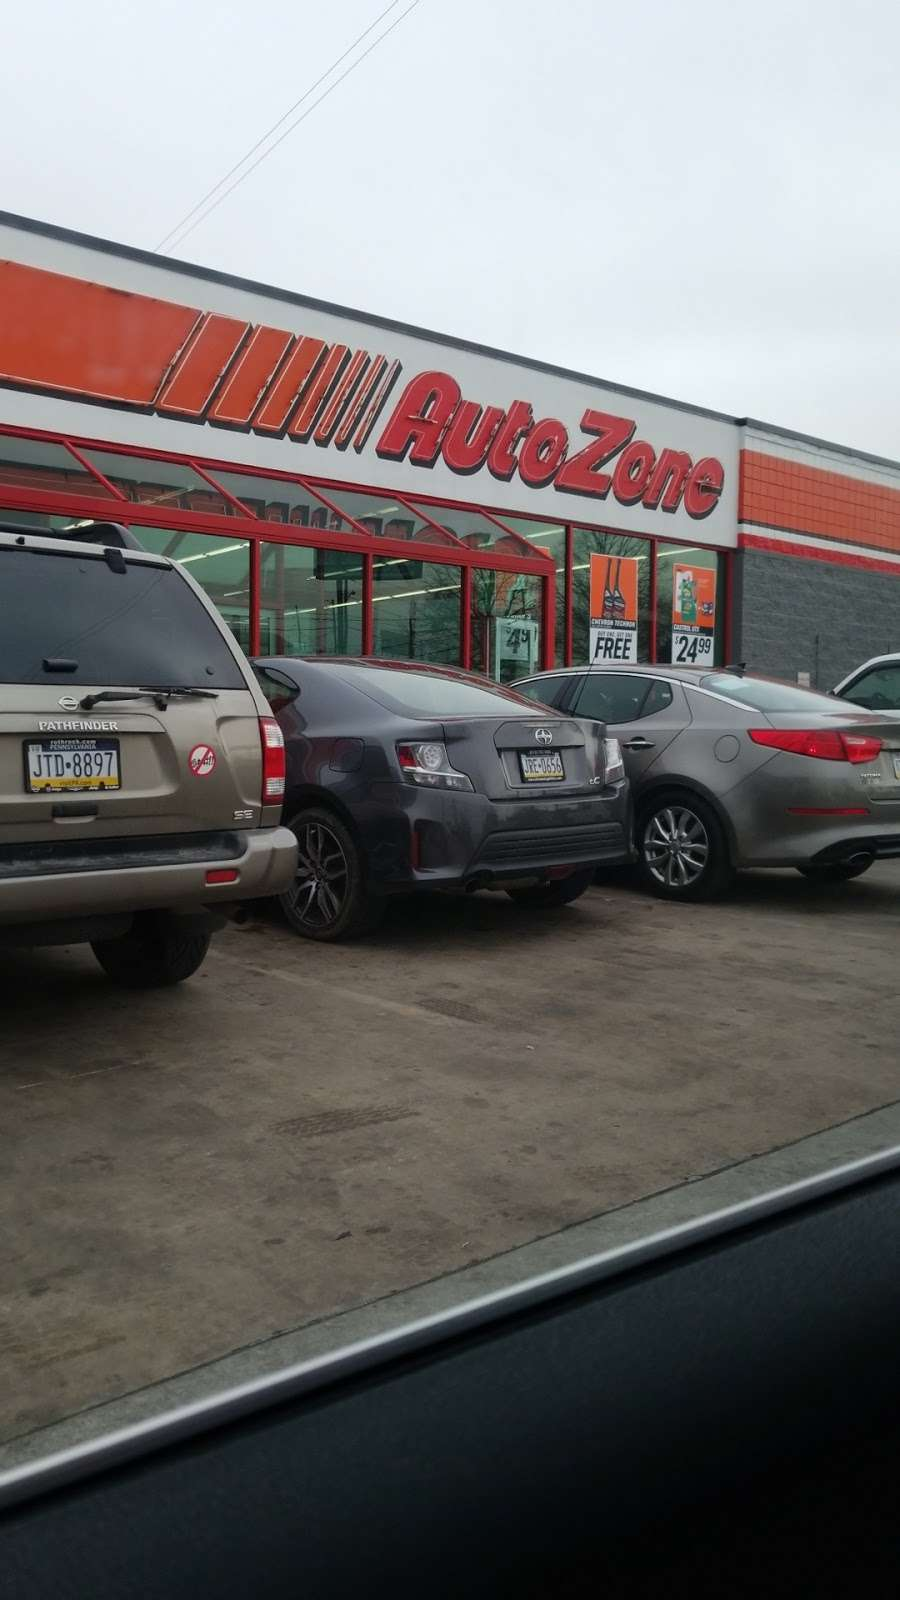 AutoZone Auto Parts - car repair  | Photo 10 of 10 | Address: 1015 Airport Rd, Allentown, PA 18109, USA | Phone: (610) 776-6174